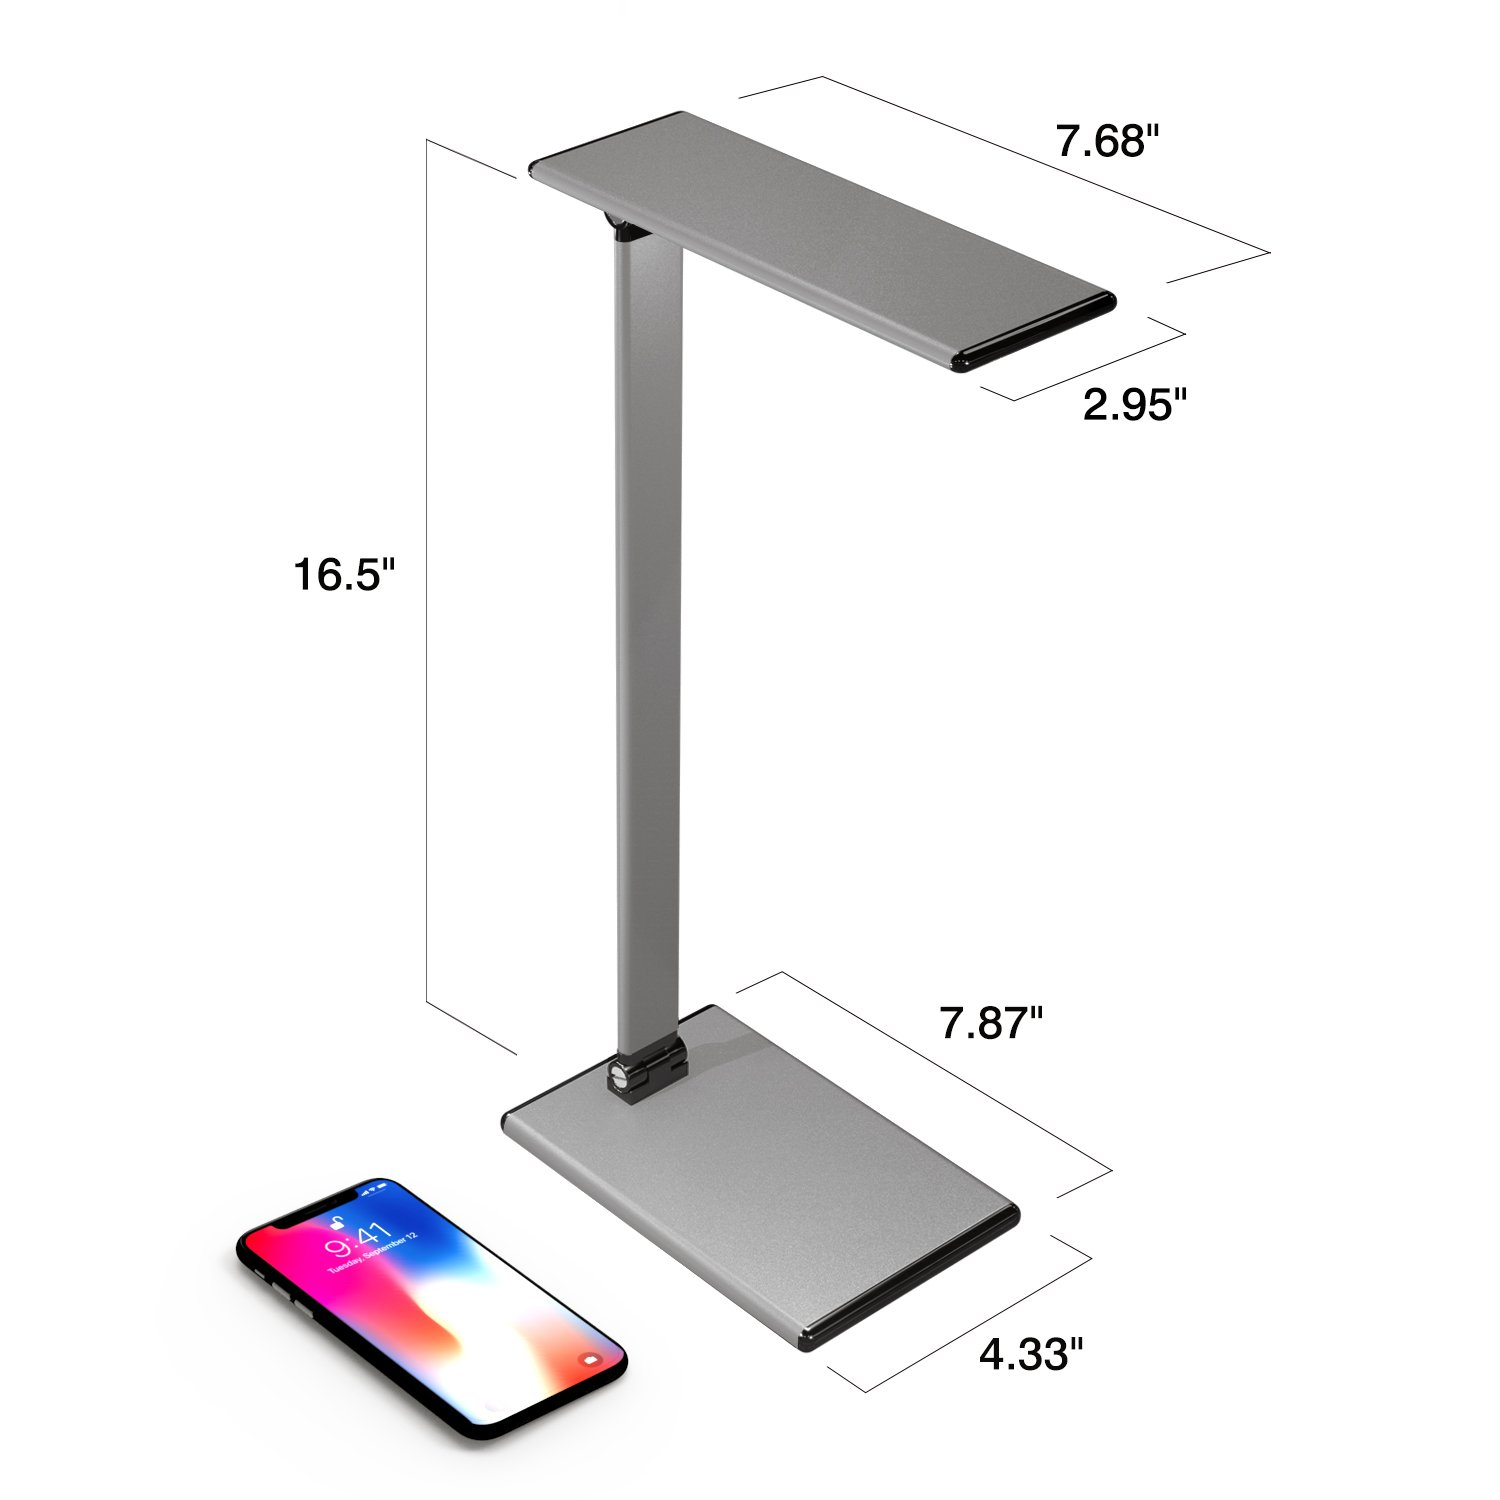 MoKo LED Desk Lamp, 8W Eye-Care Smart Touch Control Table Lamps with Rugged Aluminum Alloy Body, Stepless Adjusted Color Temperature/Brightness Level, Rotatable Arm/Head, Memory Function - Dark Gray by MoKo (Image #6)